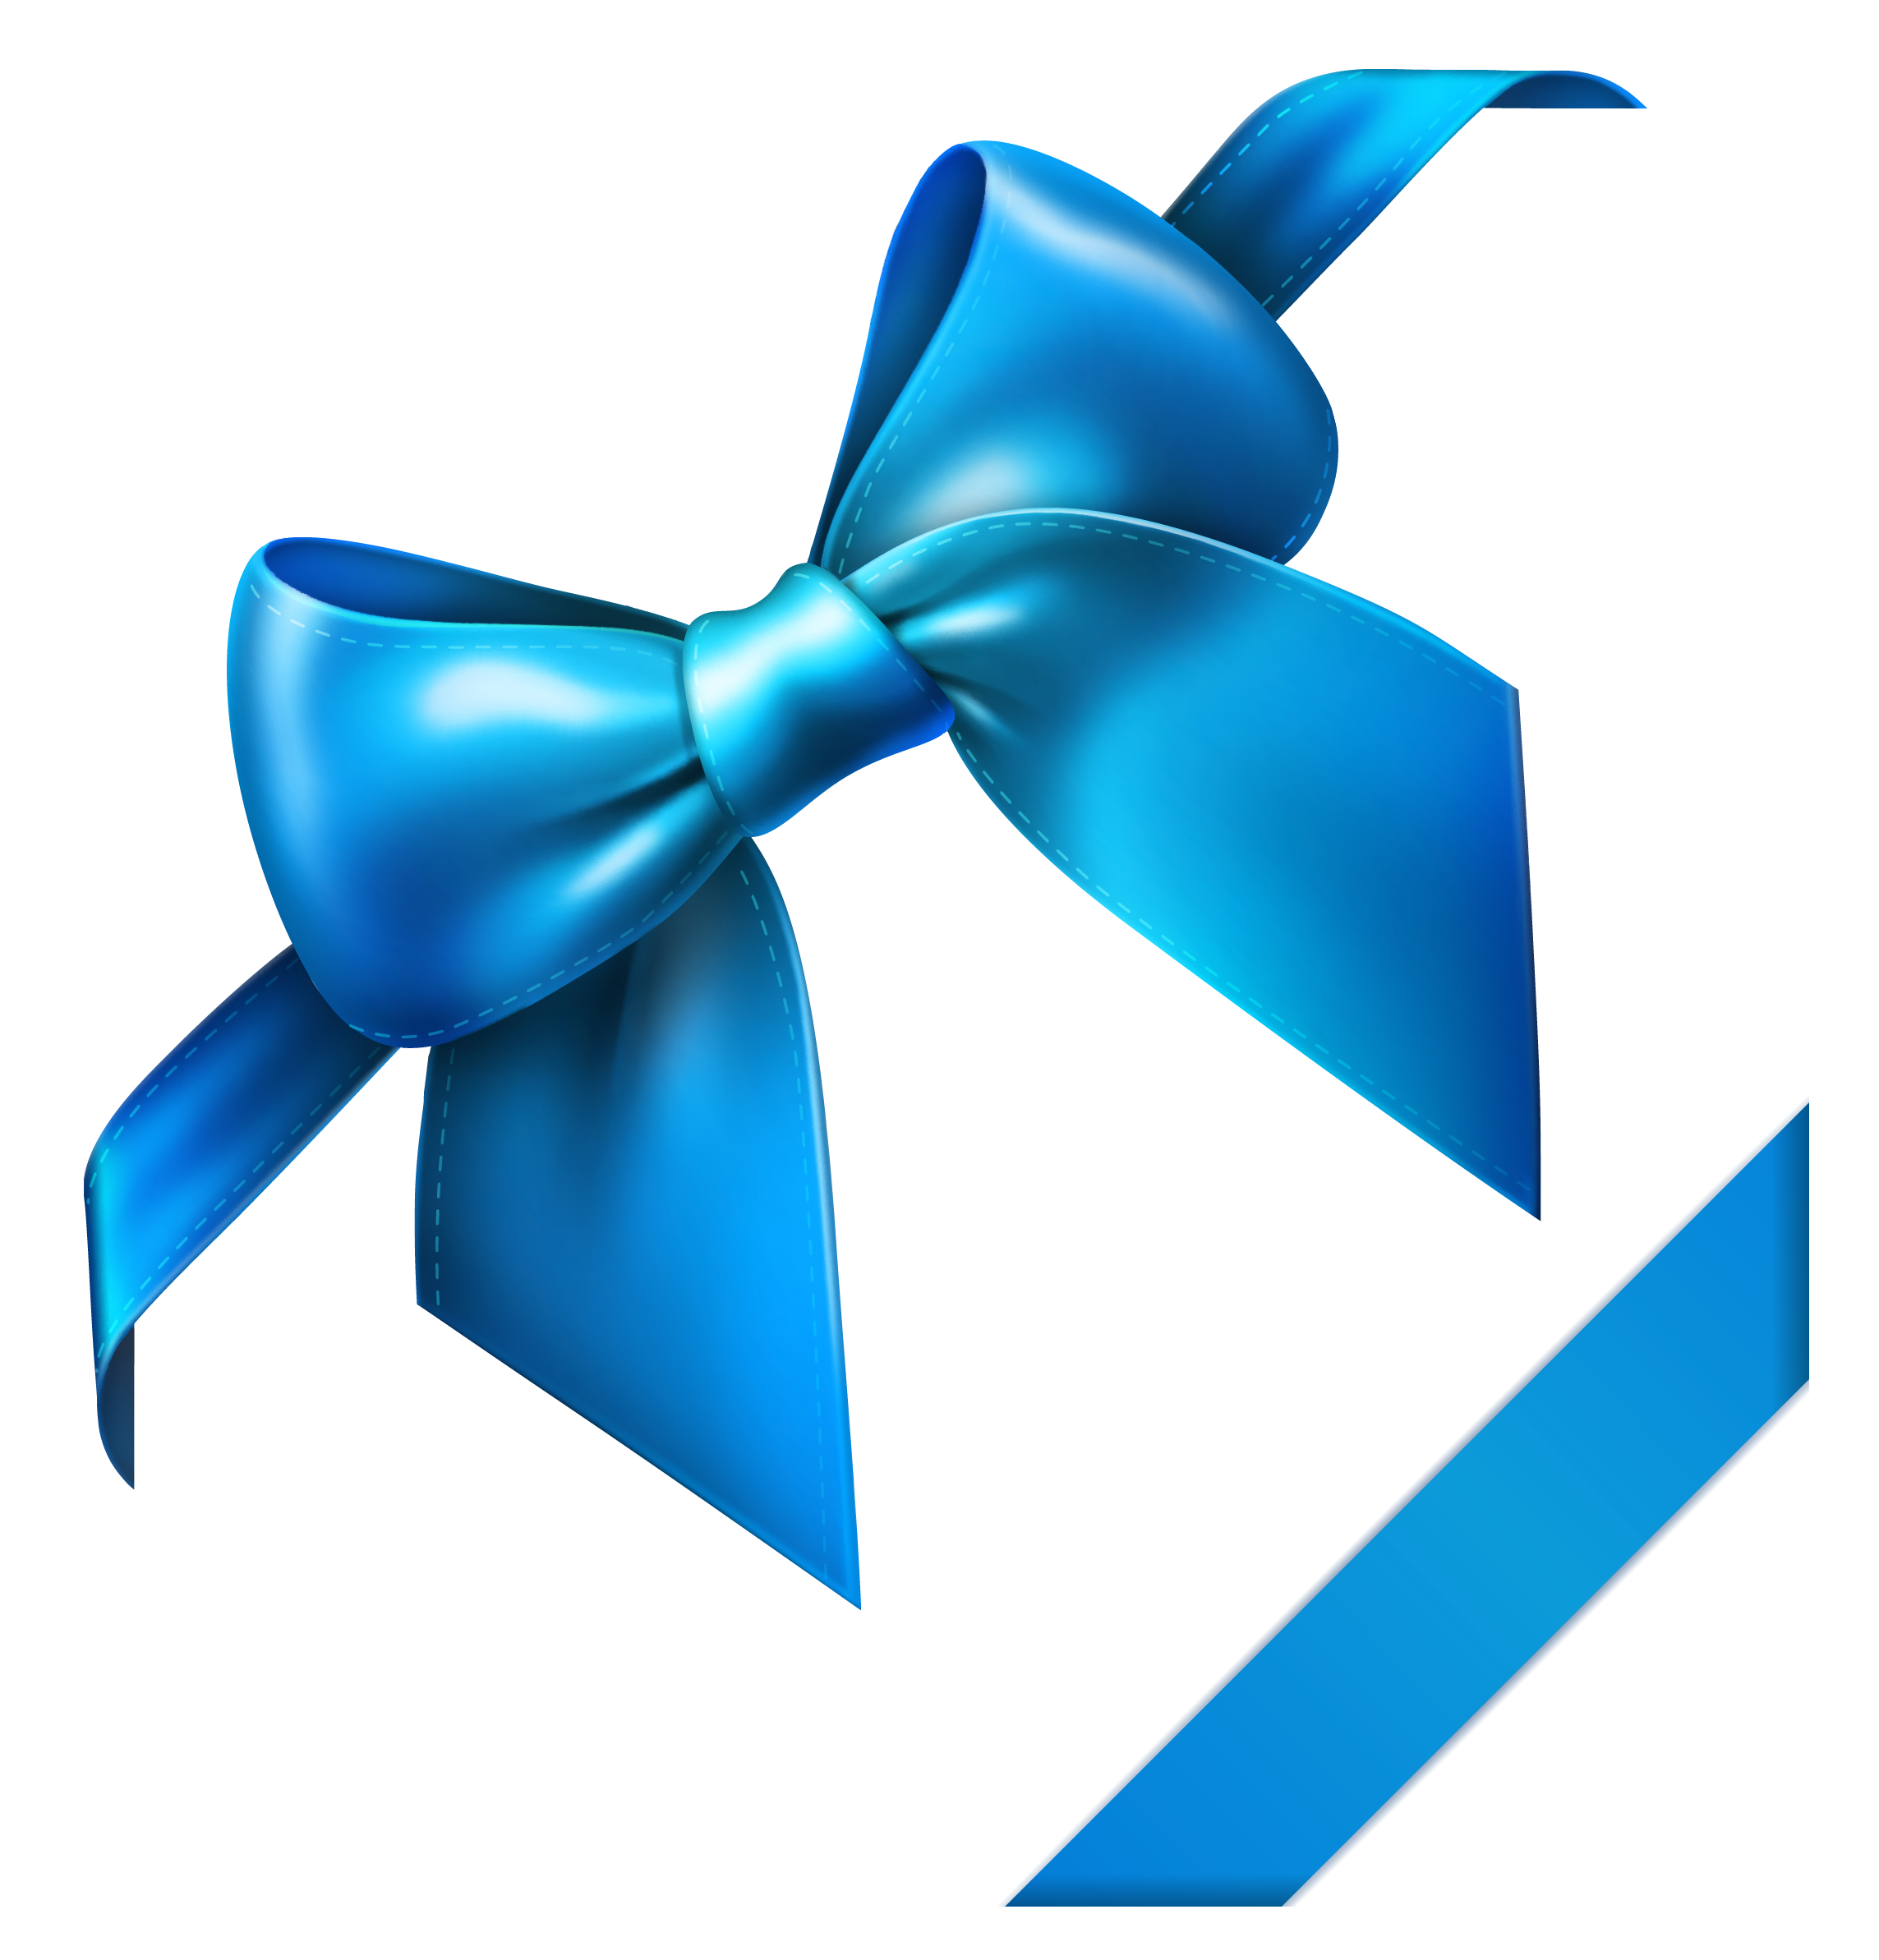 clipart bow turquoise bow